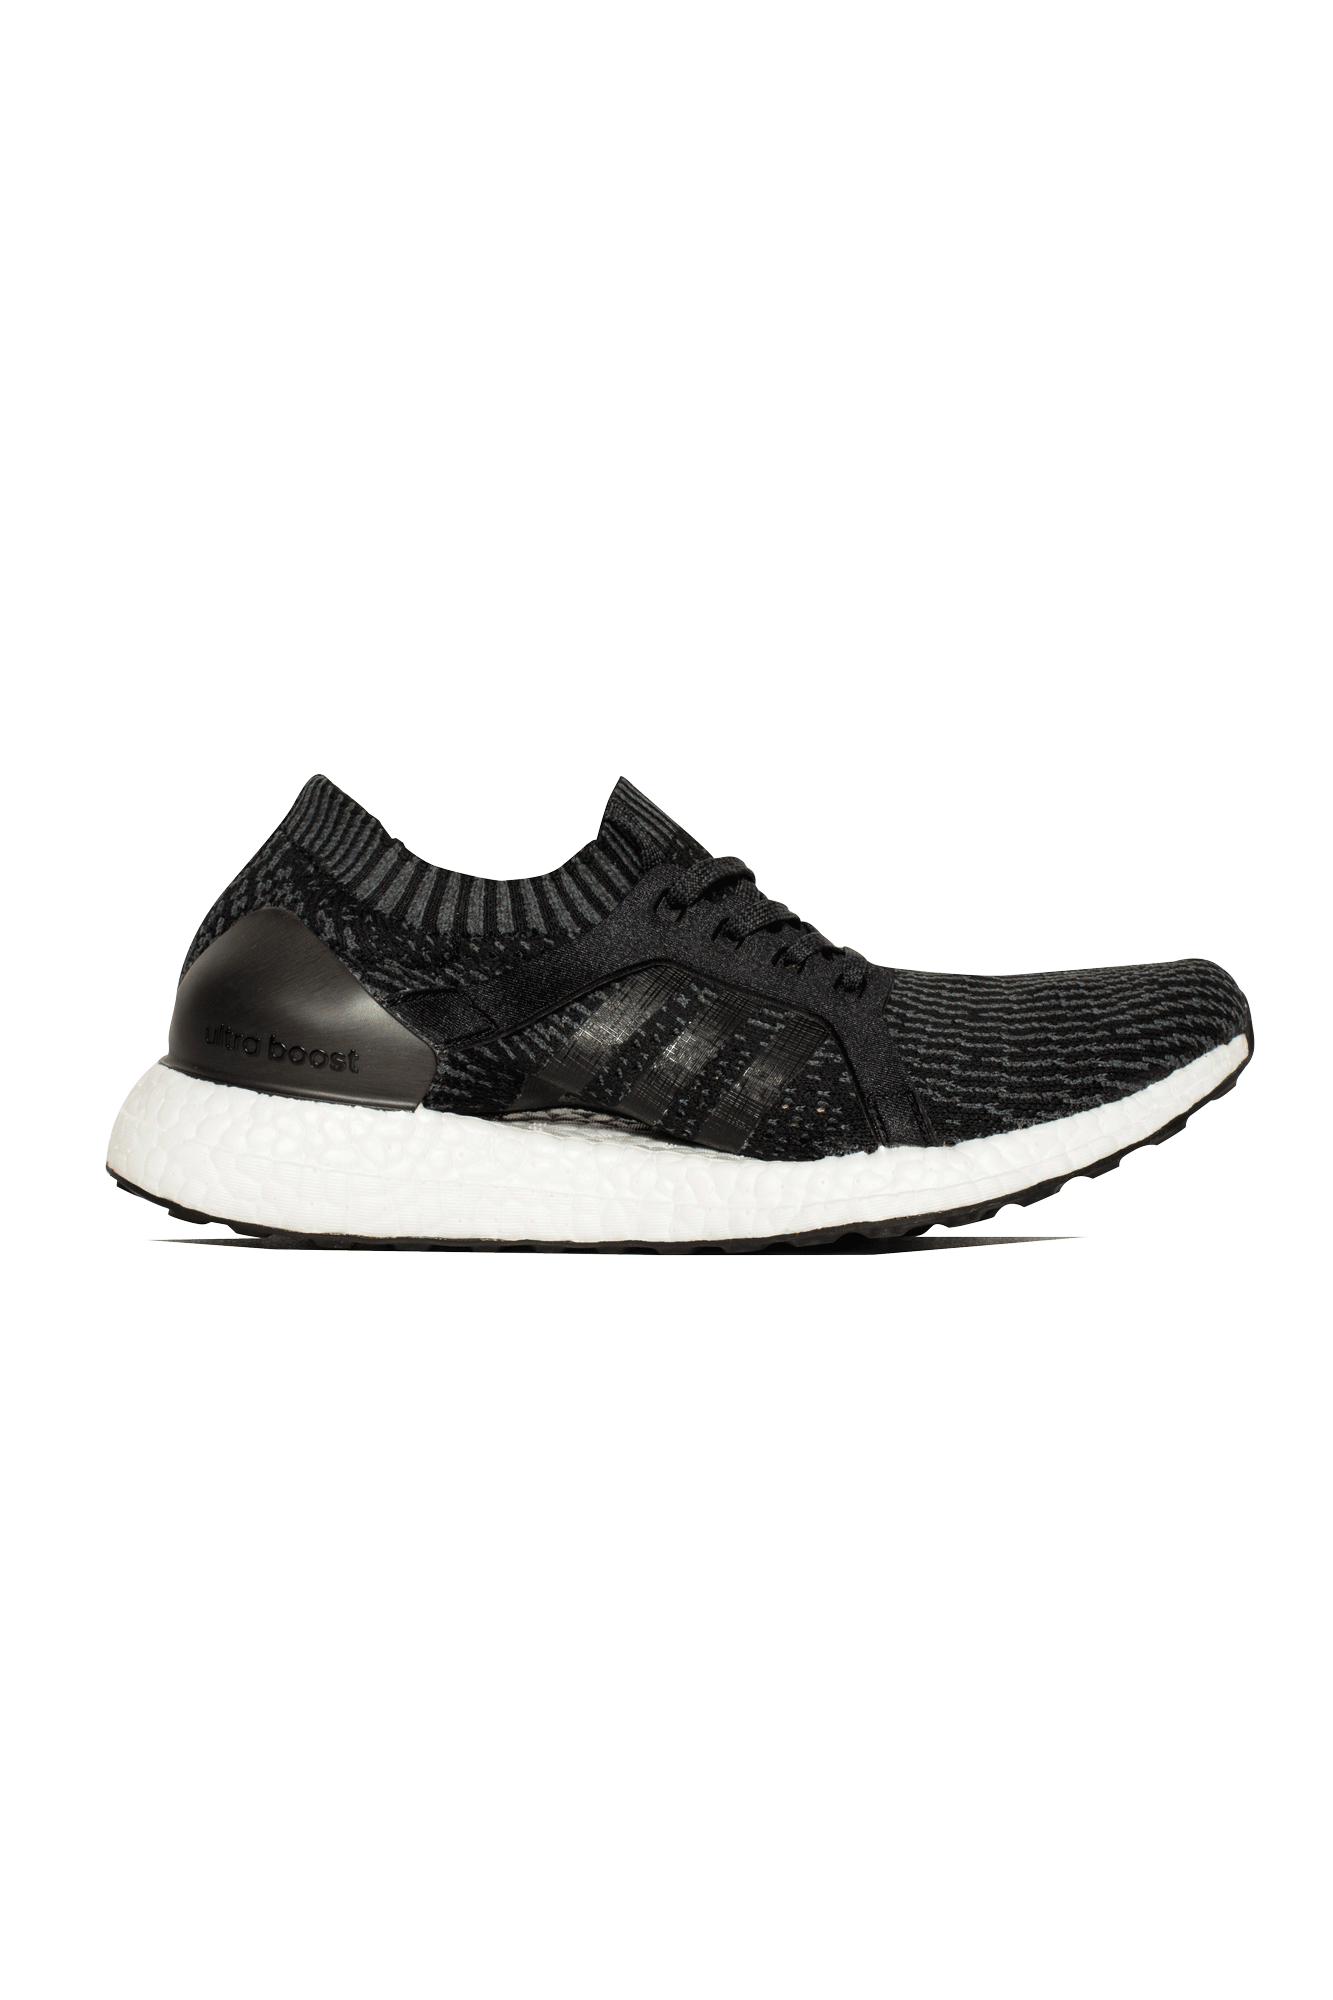 new style 5a60d af2d4 Adidas Originals Trainers Ultraboost X Black BB1696#000#C0010#5 - One Block  Down